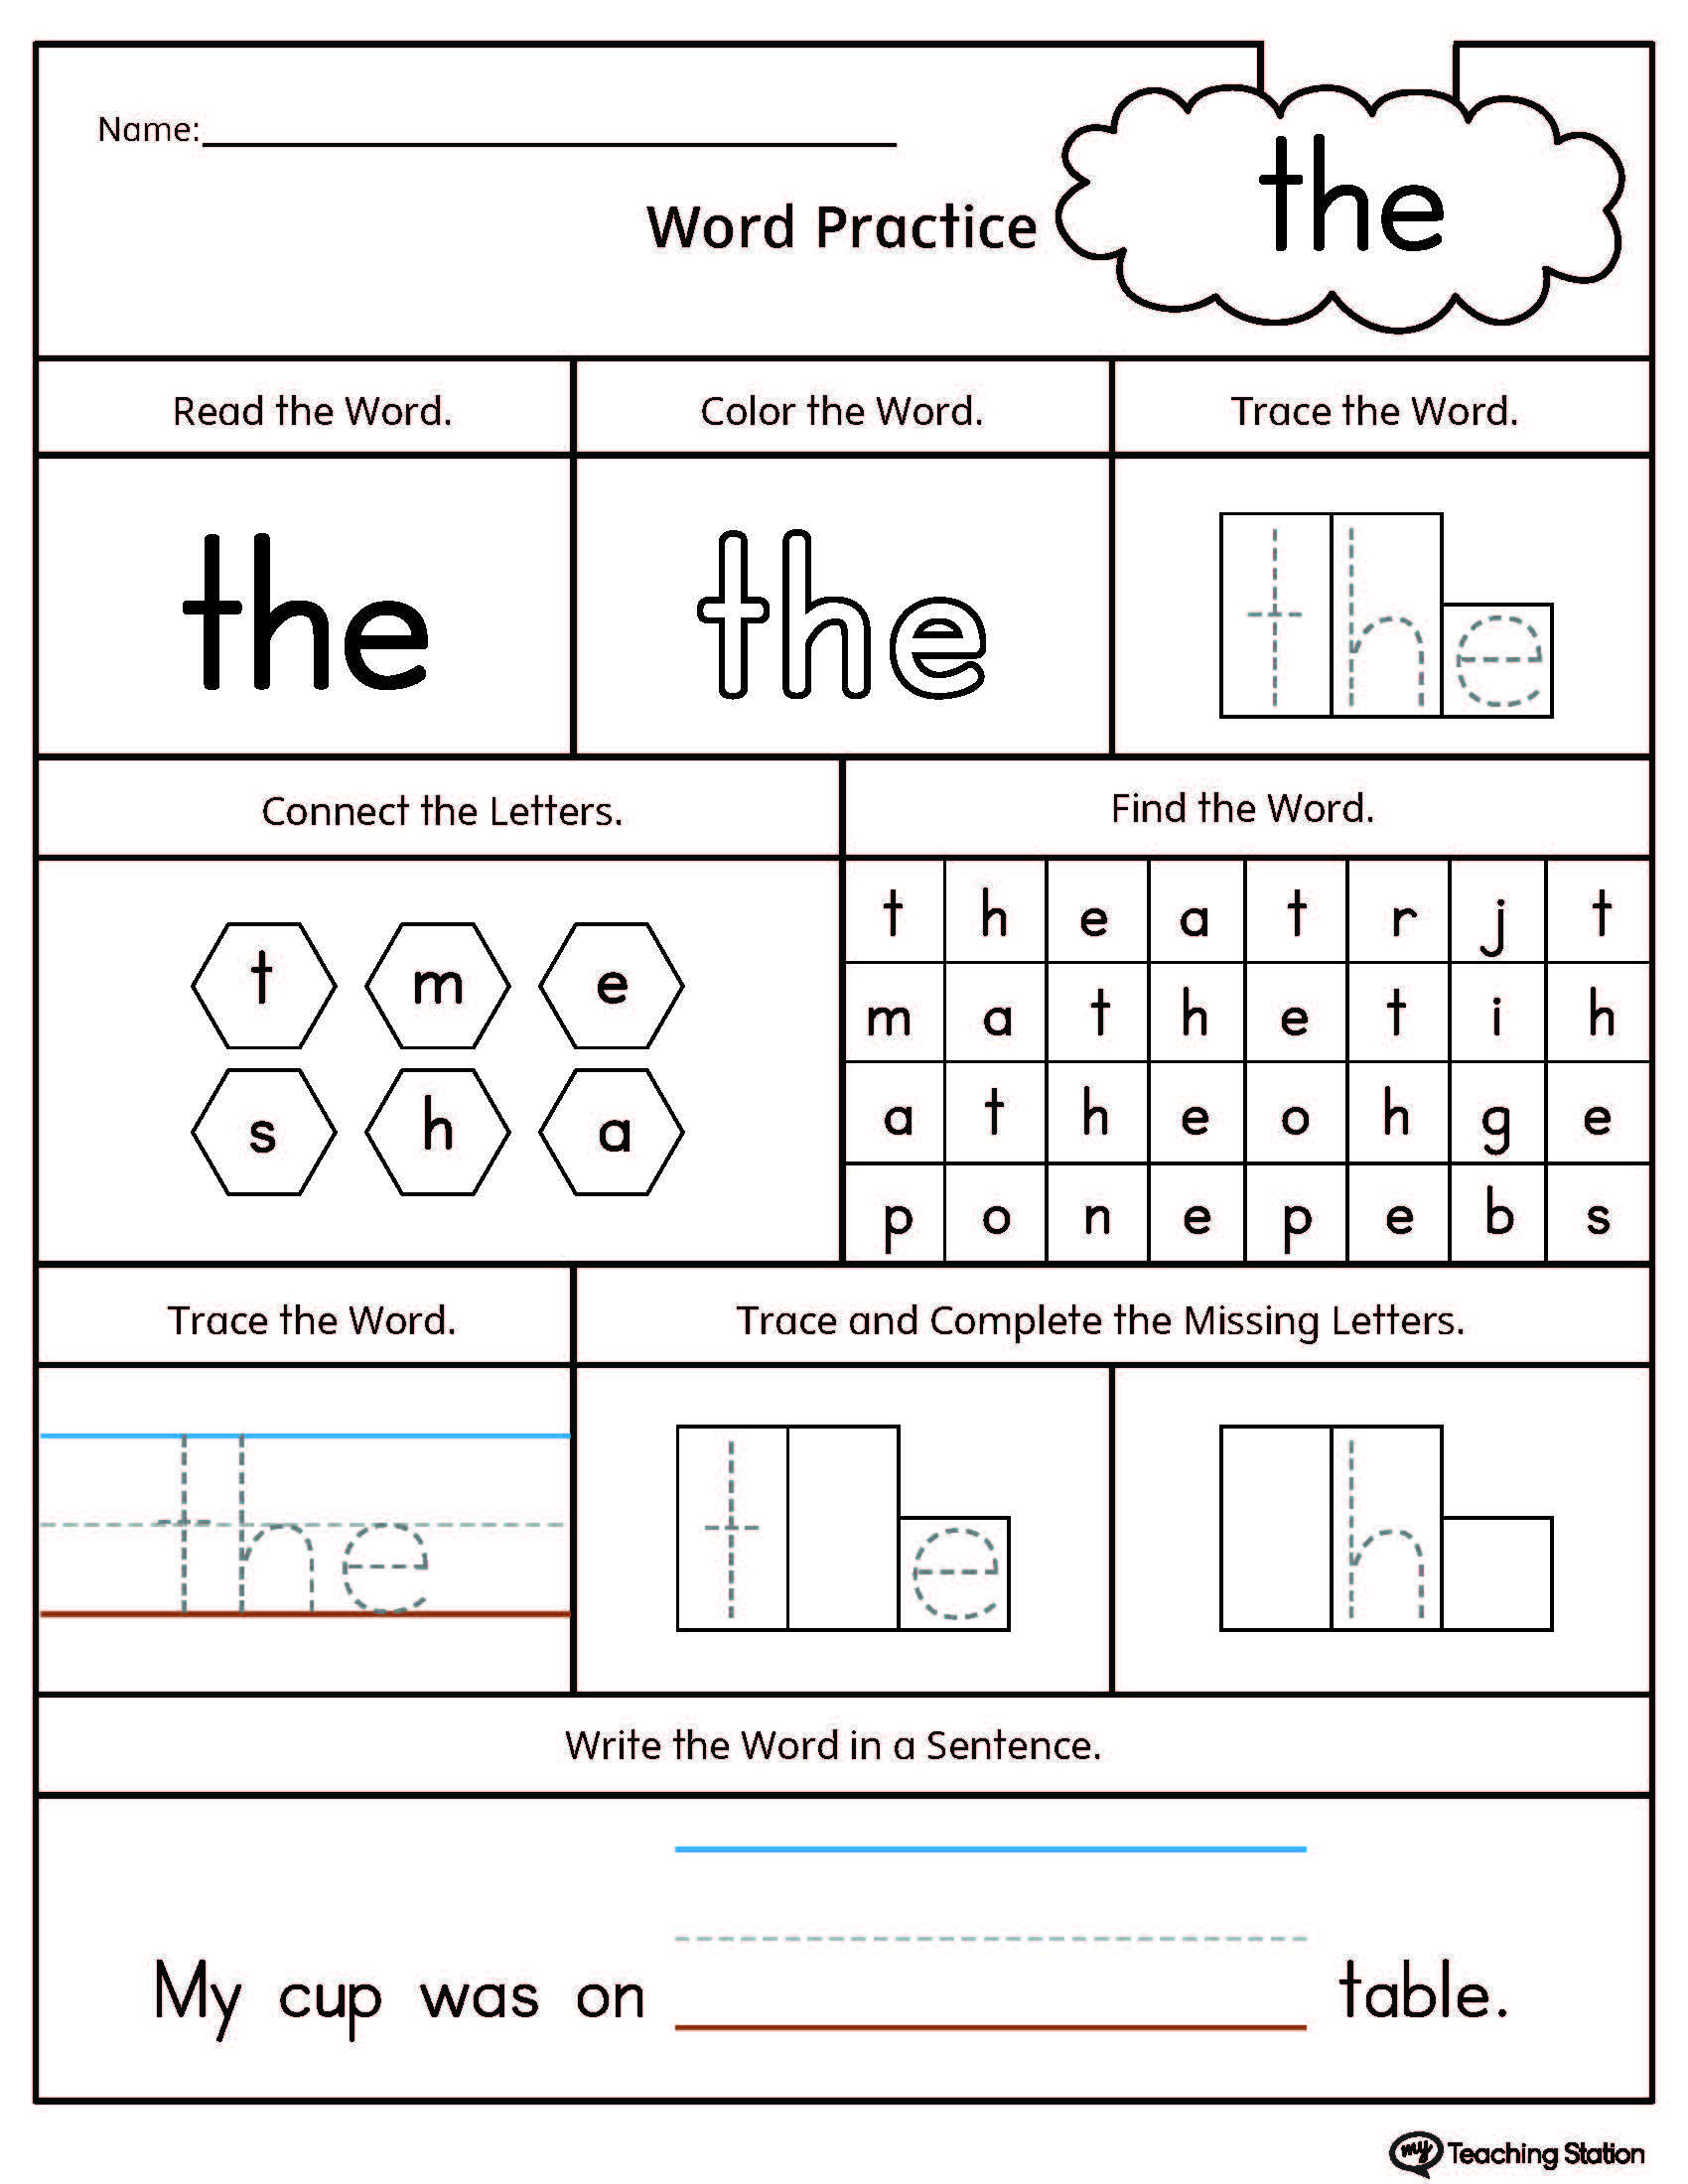 Selective image intended for free printable sight word activities